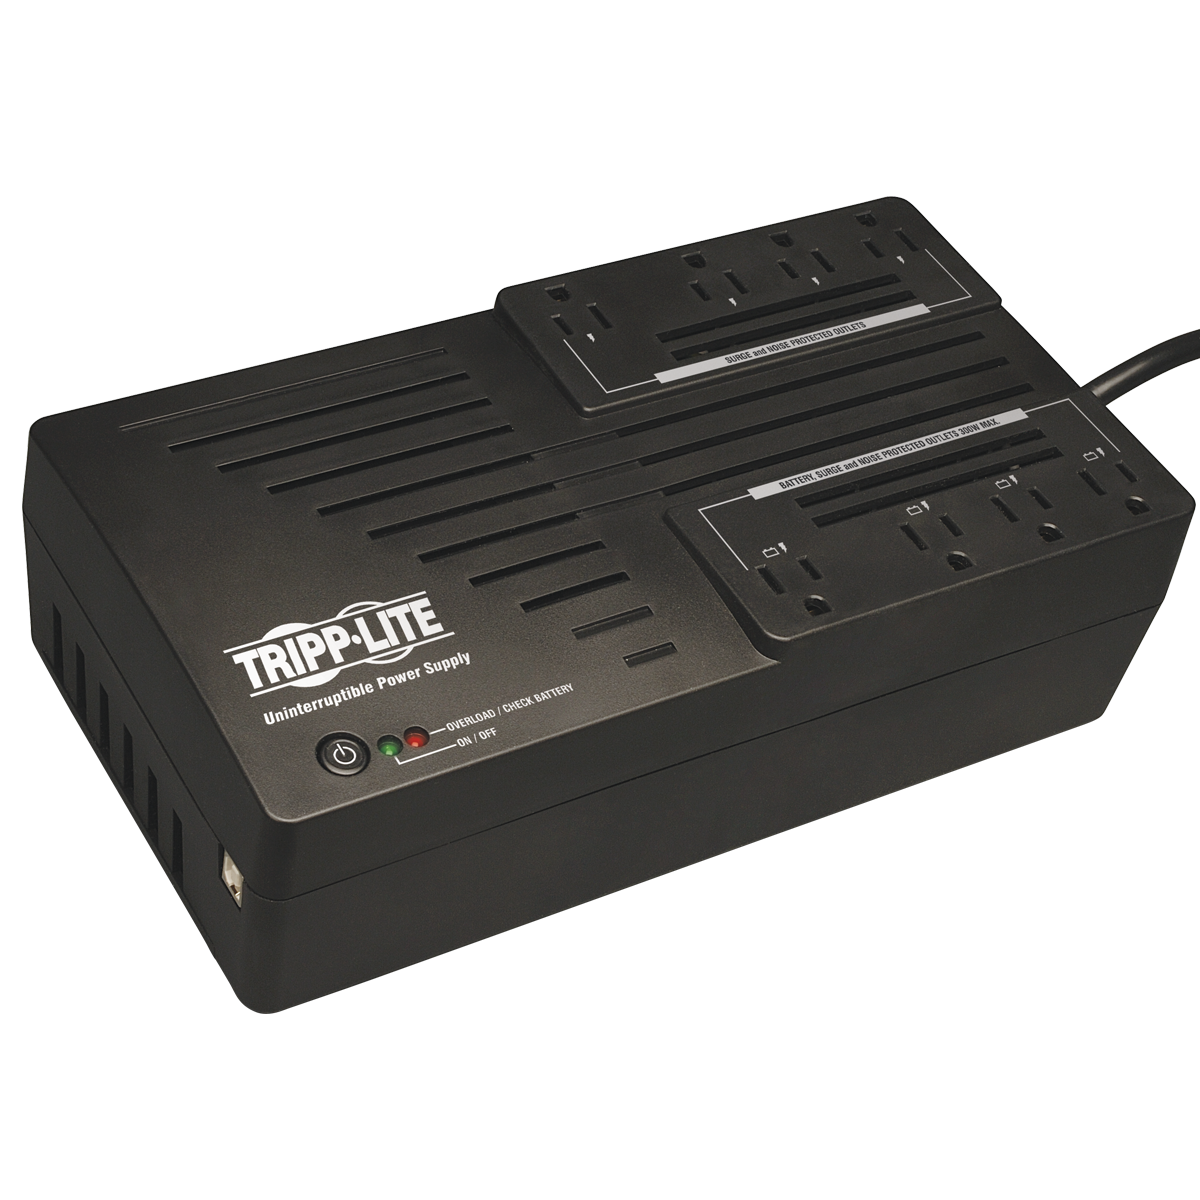 Macmall Tripplite 700va 350w Ups Desktop Battery Back Up Avr Automatic Switching For 8211 Usb Power Connection Media